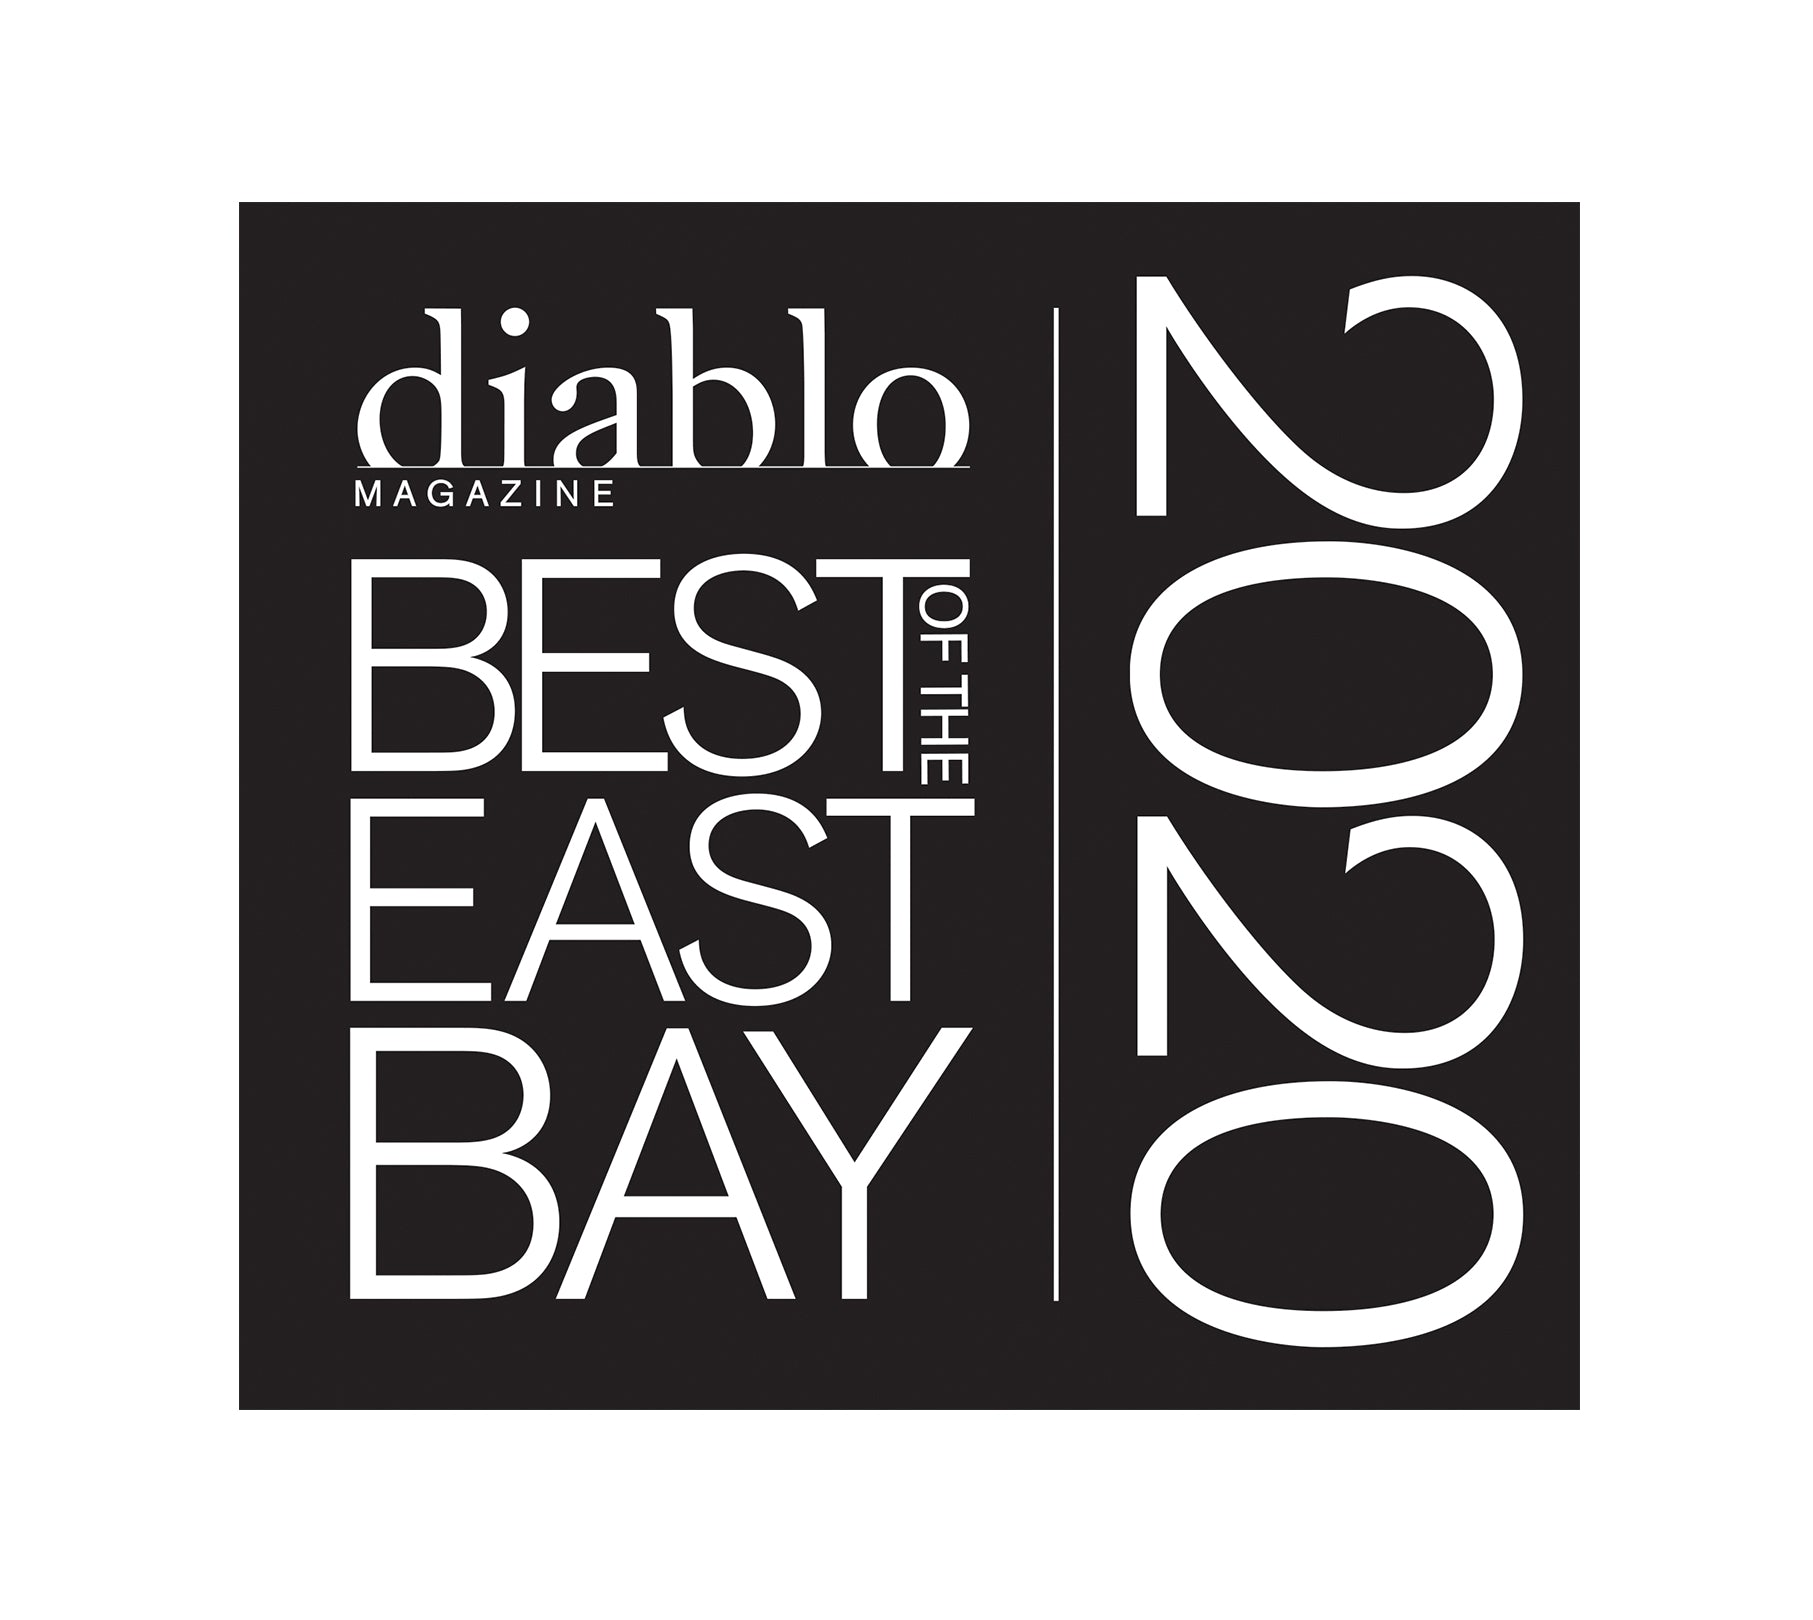 "Diablo Magazine  ""Best of the East Bay"" Award - Window Decals by NewsKeepsake"